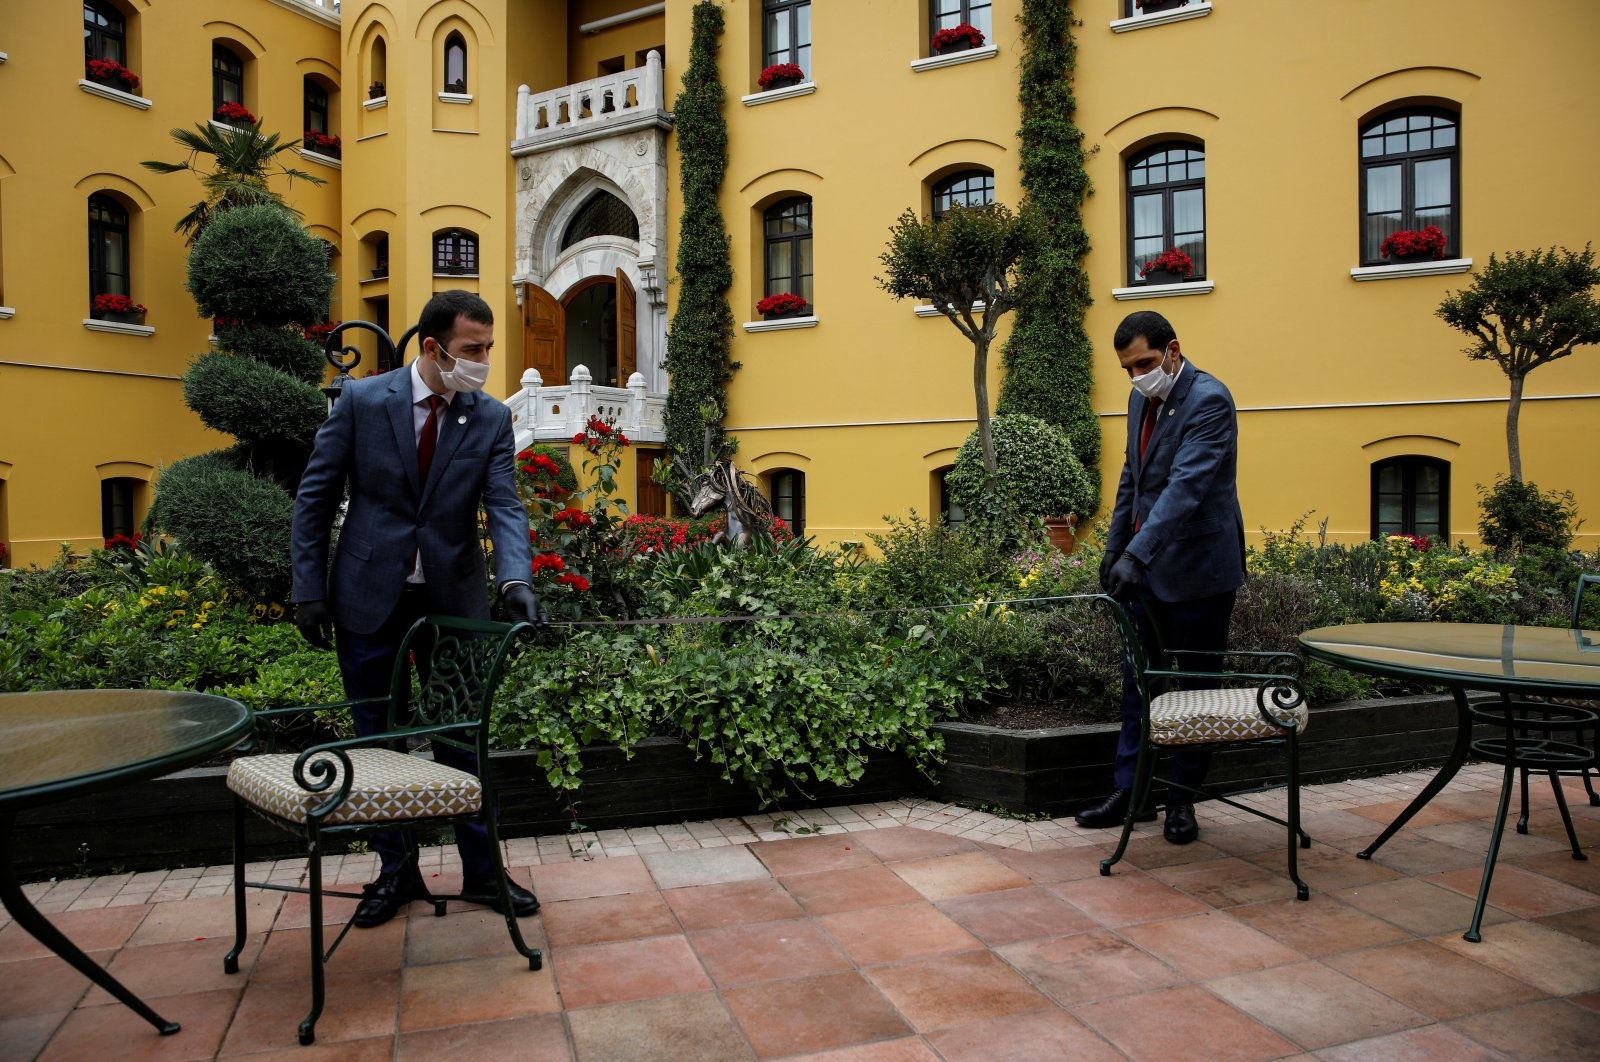 Four Seasons Sultanahmet Hotel staff members measure distance between tables and chairs as they check the readiness of the hotel to the Healthy Tourism Certificate Program, Istanbul, Turkey, May 21, 2020. (Reuters Photo)